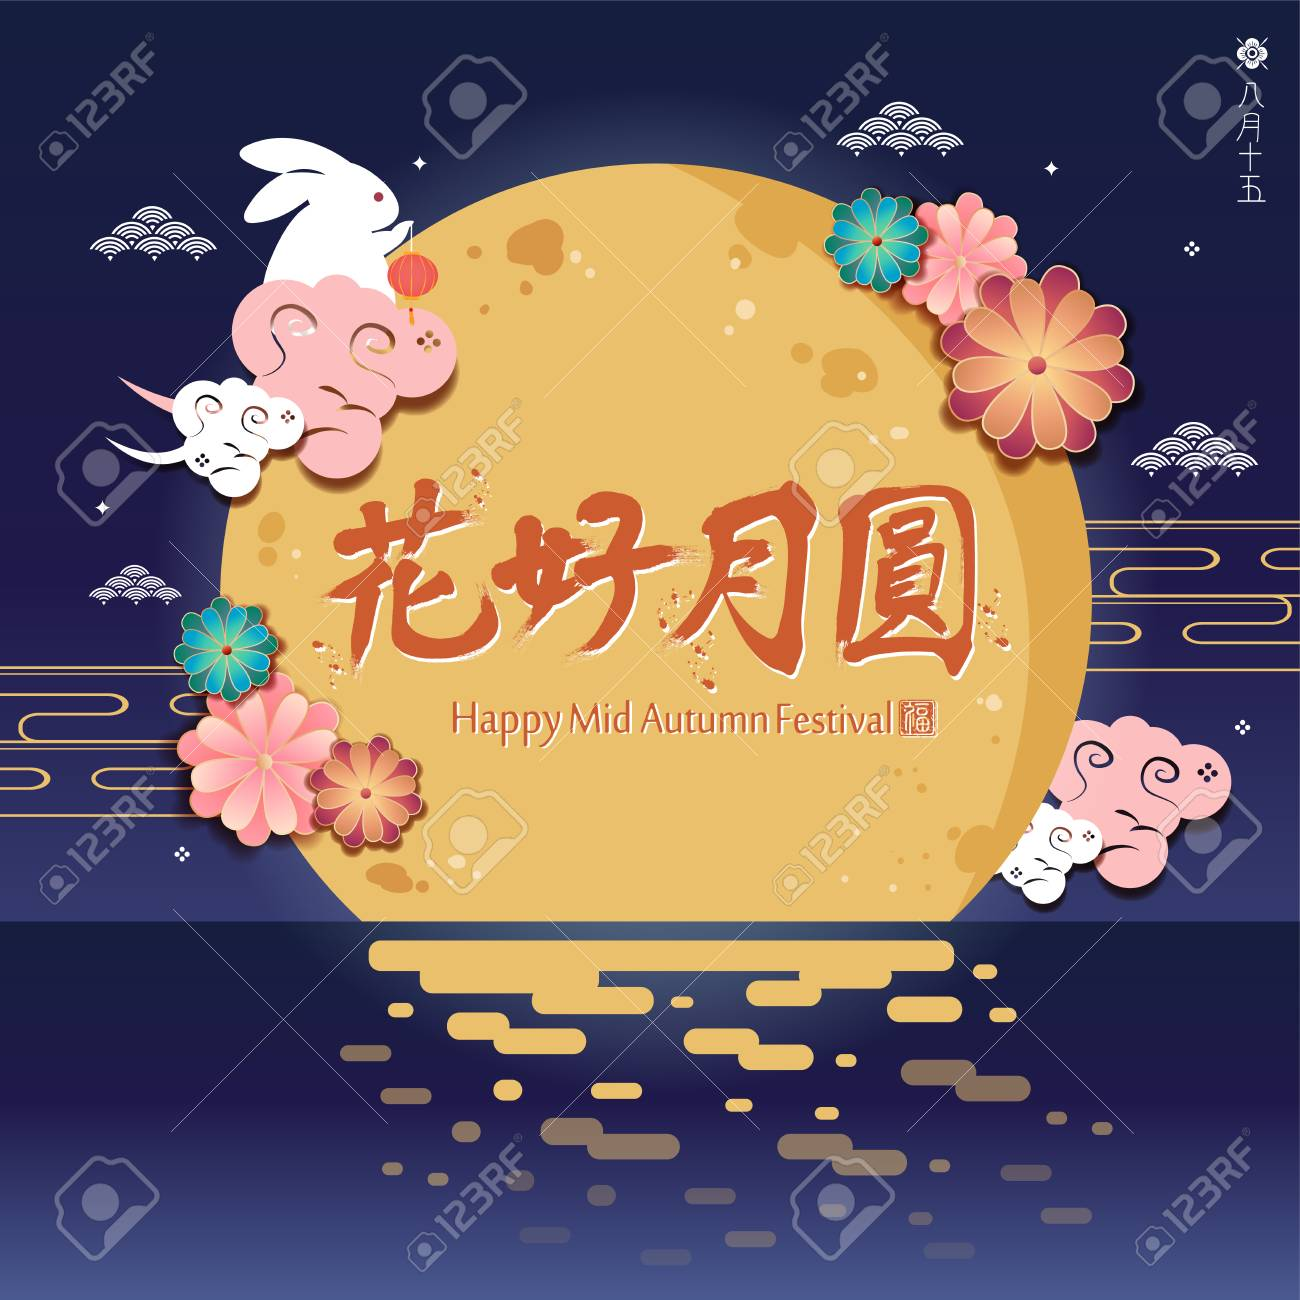 Happy Mid Autumn Festival With Beautiful Flower And Moon In The Royalty Free Cliparts Vectors And Stock Illustration Image 107428552